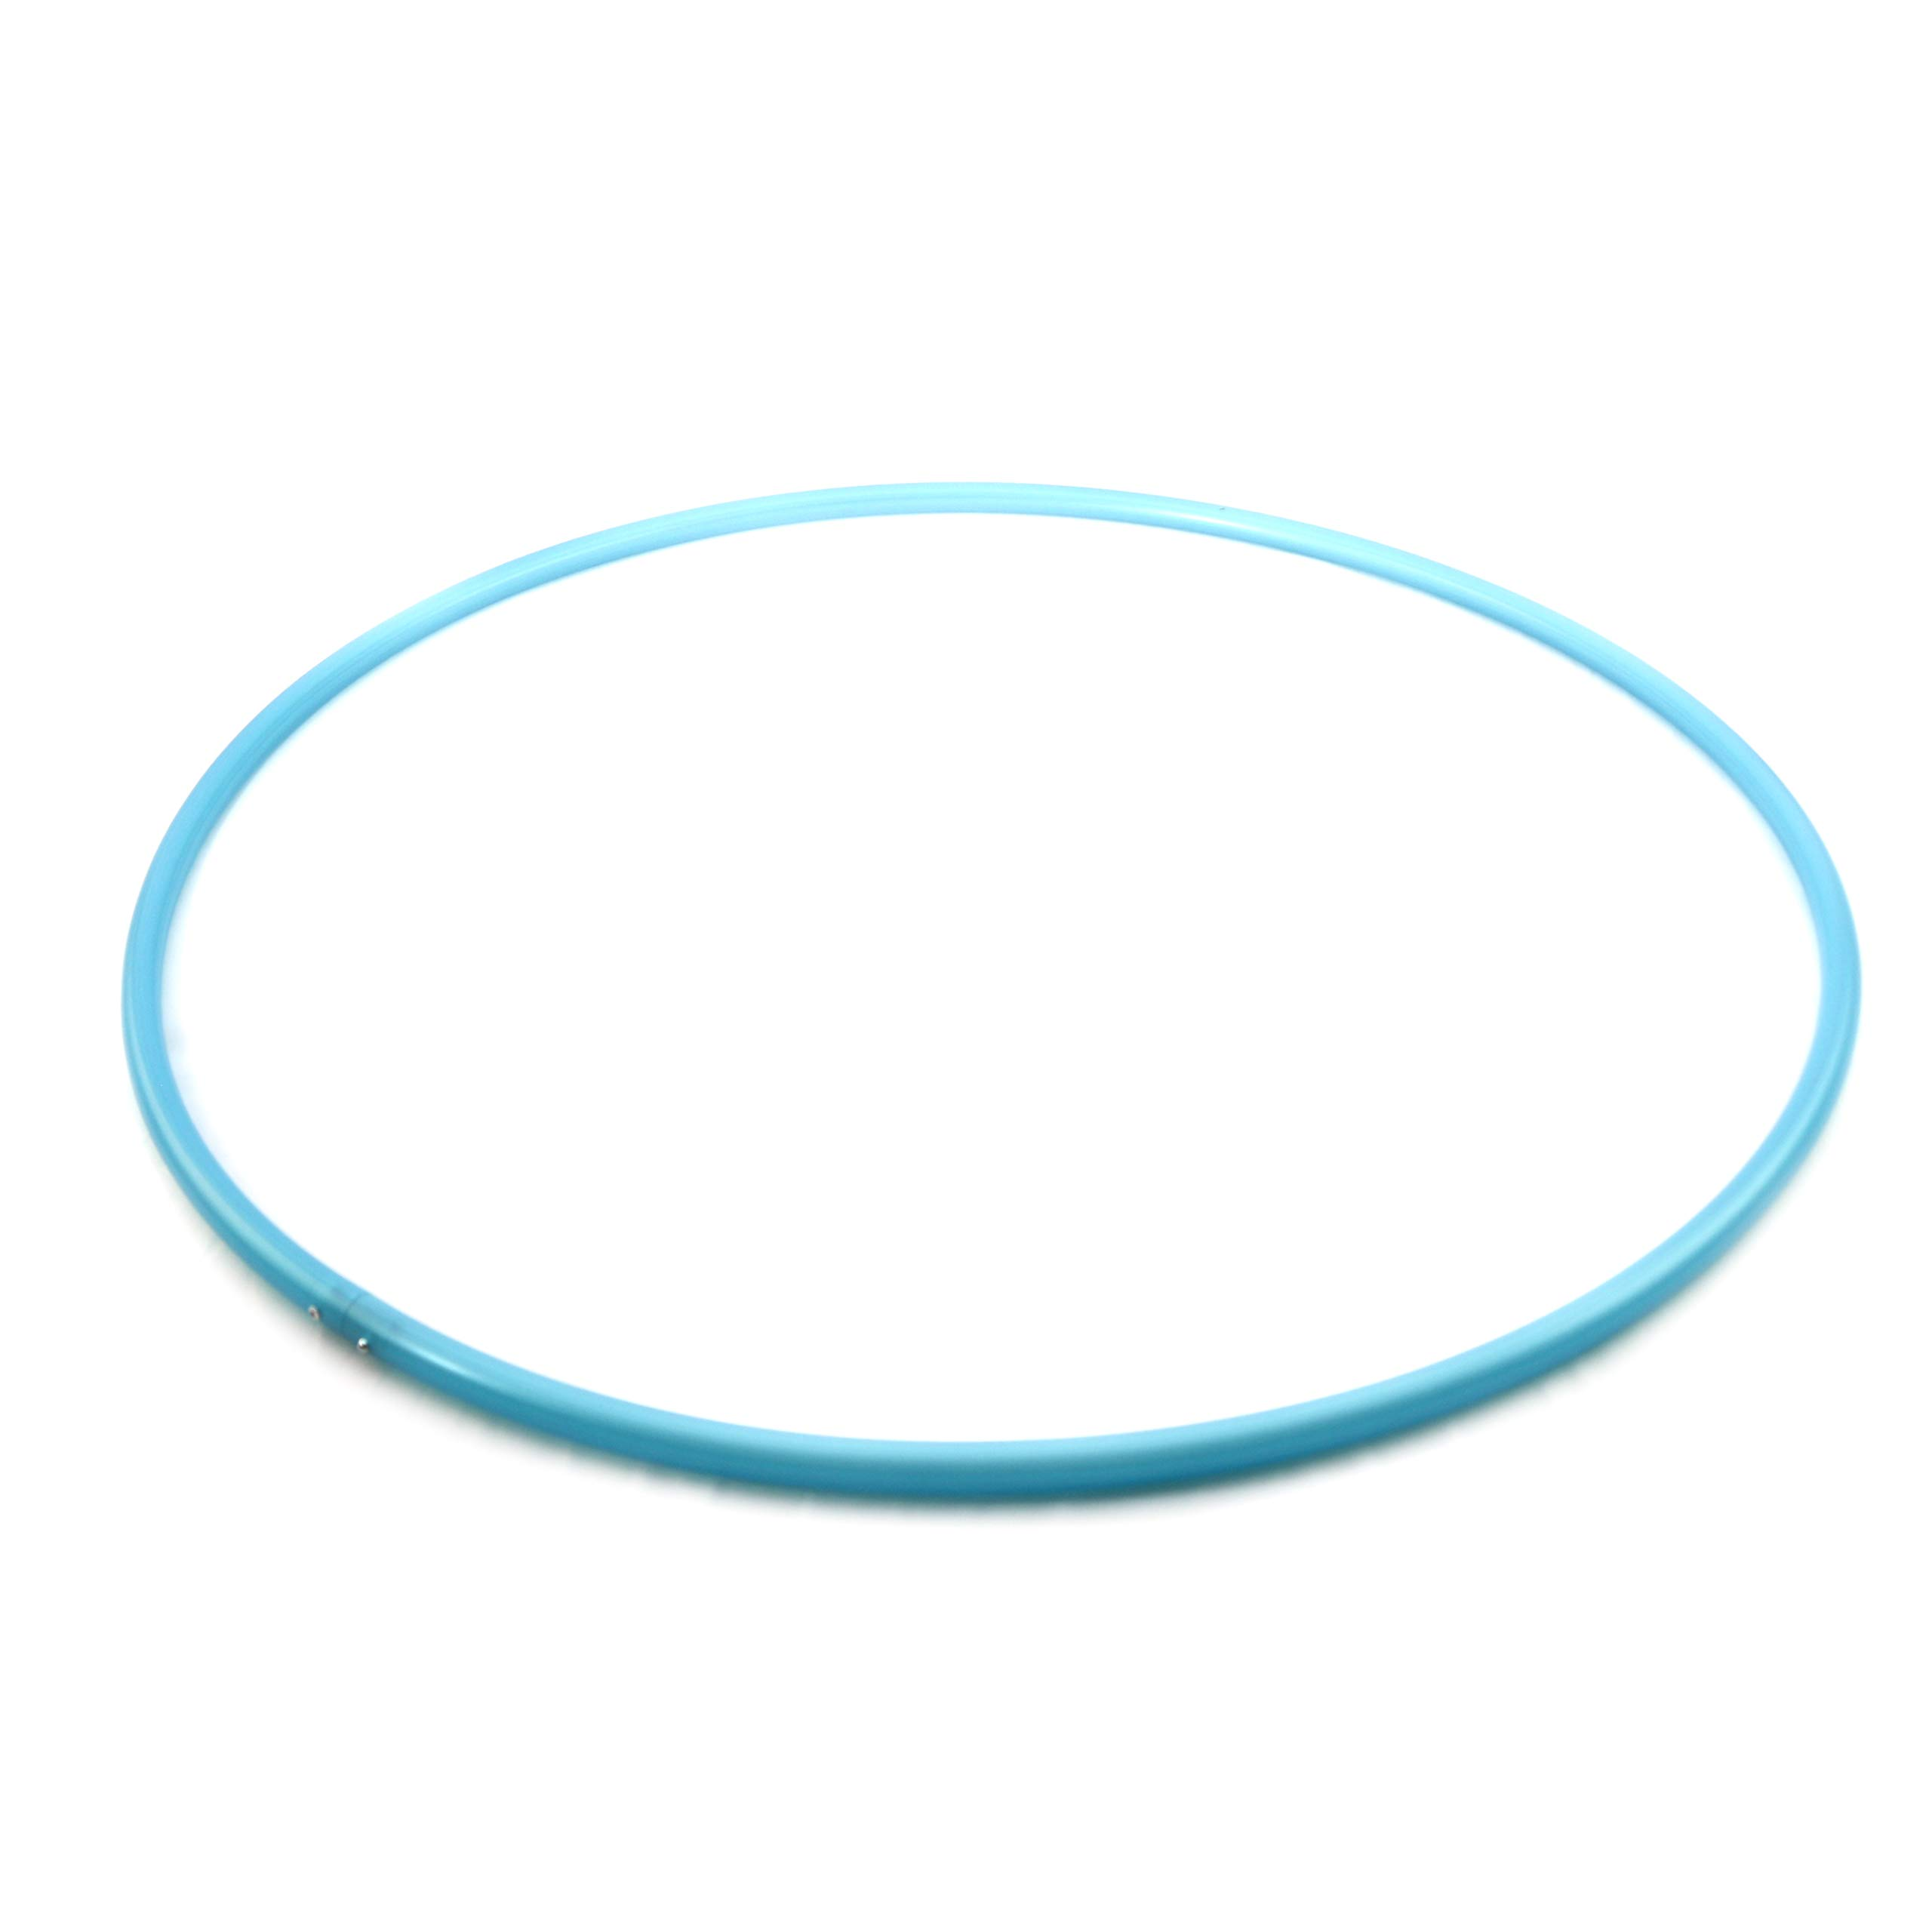 "The Spinsterz Adult Polypro Hula Hoop. Performance and Dance Hoop. (Blue Glitter, 28"" x 5/8"" OD (Advanced))"